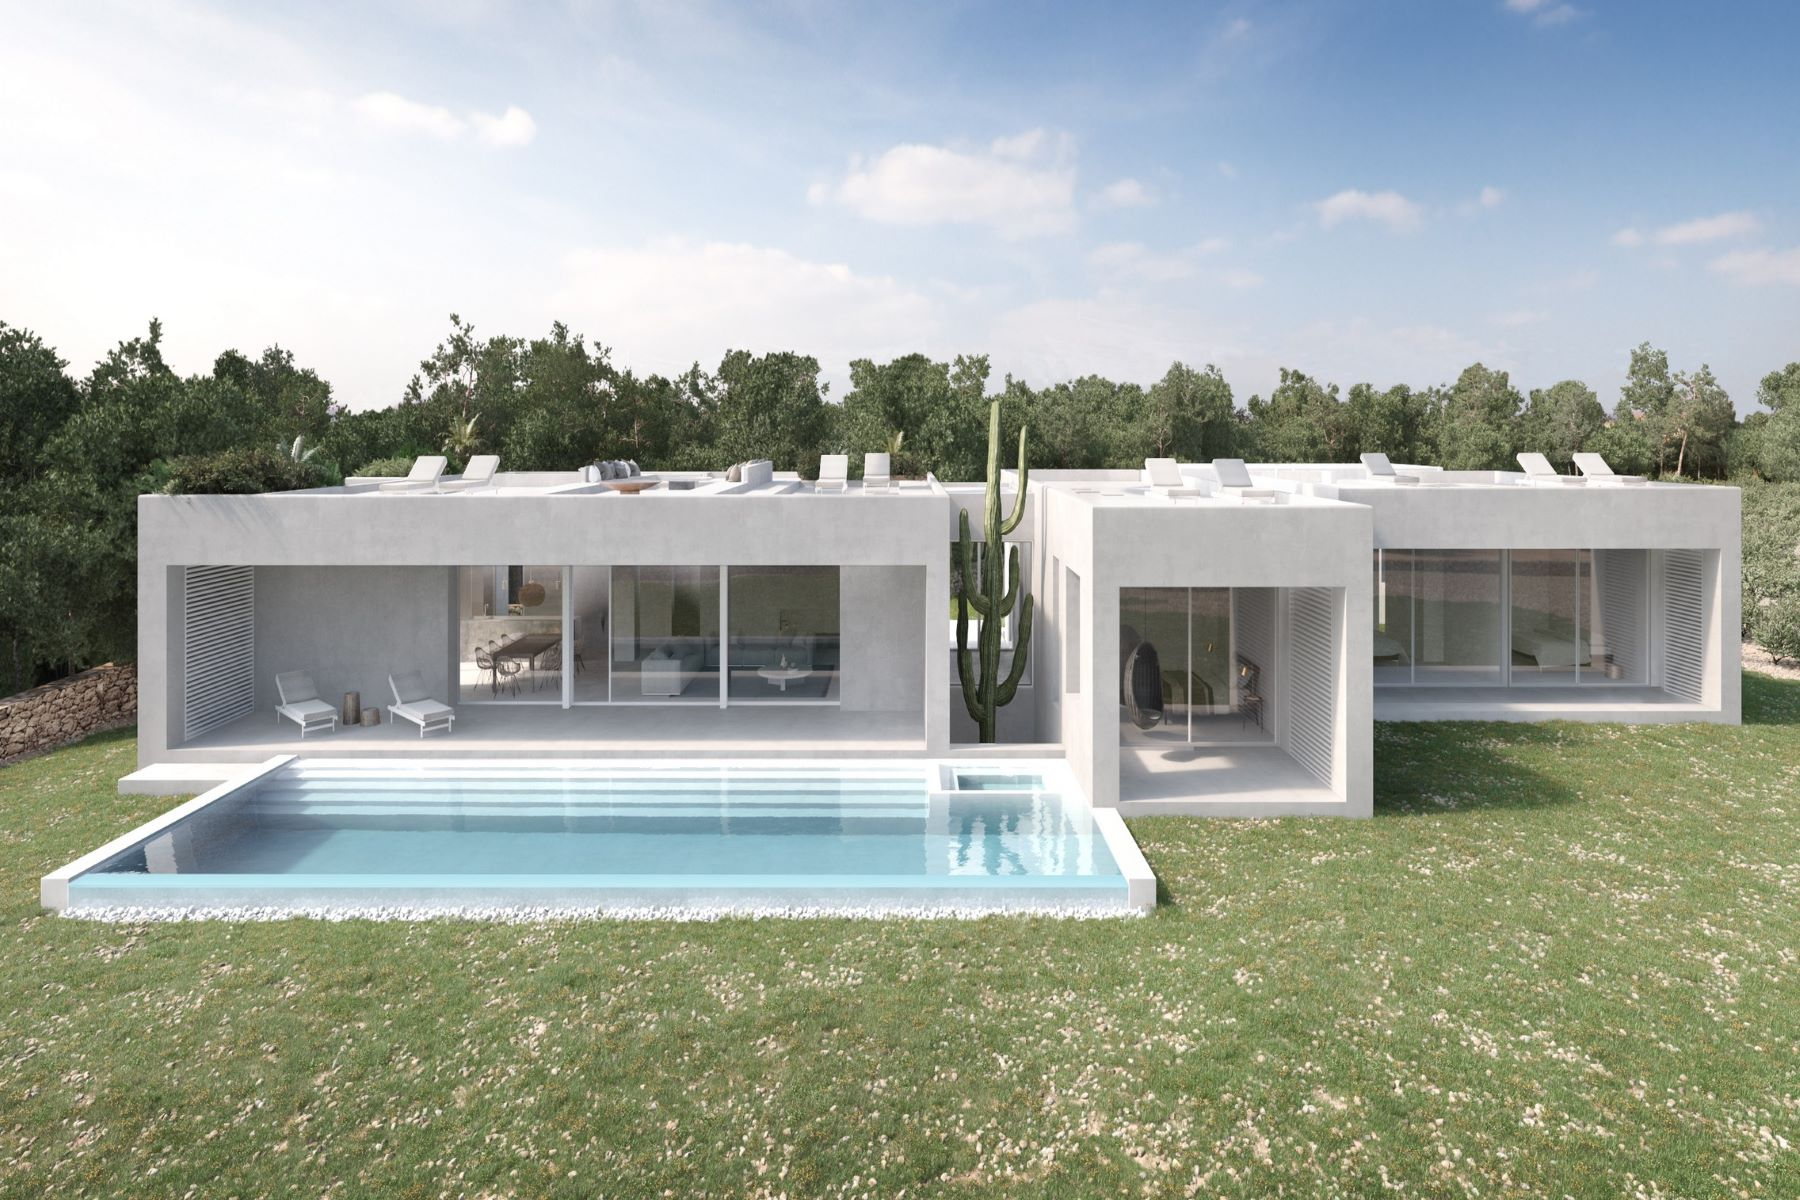 Single Family Homes for Sale at Modern Waterfront Home under construction - Direct Sea View Formentera Formentera, Balearic Islands 07860 Spain